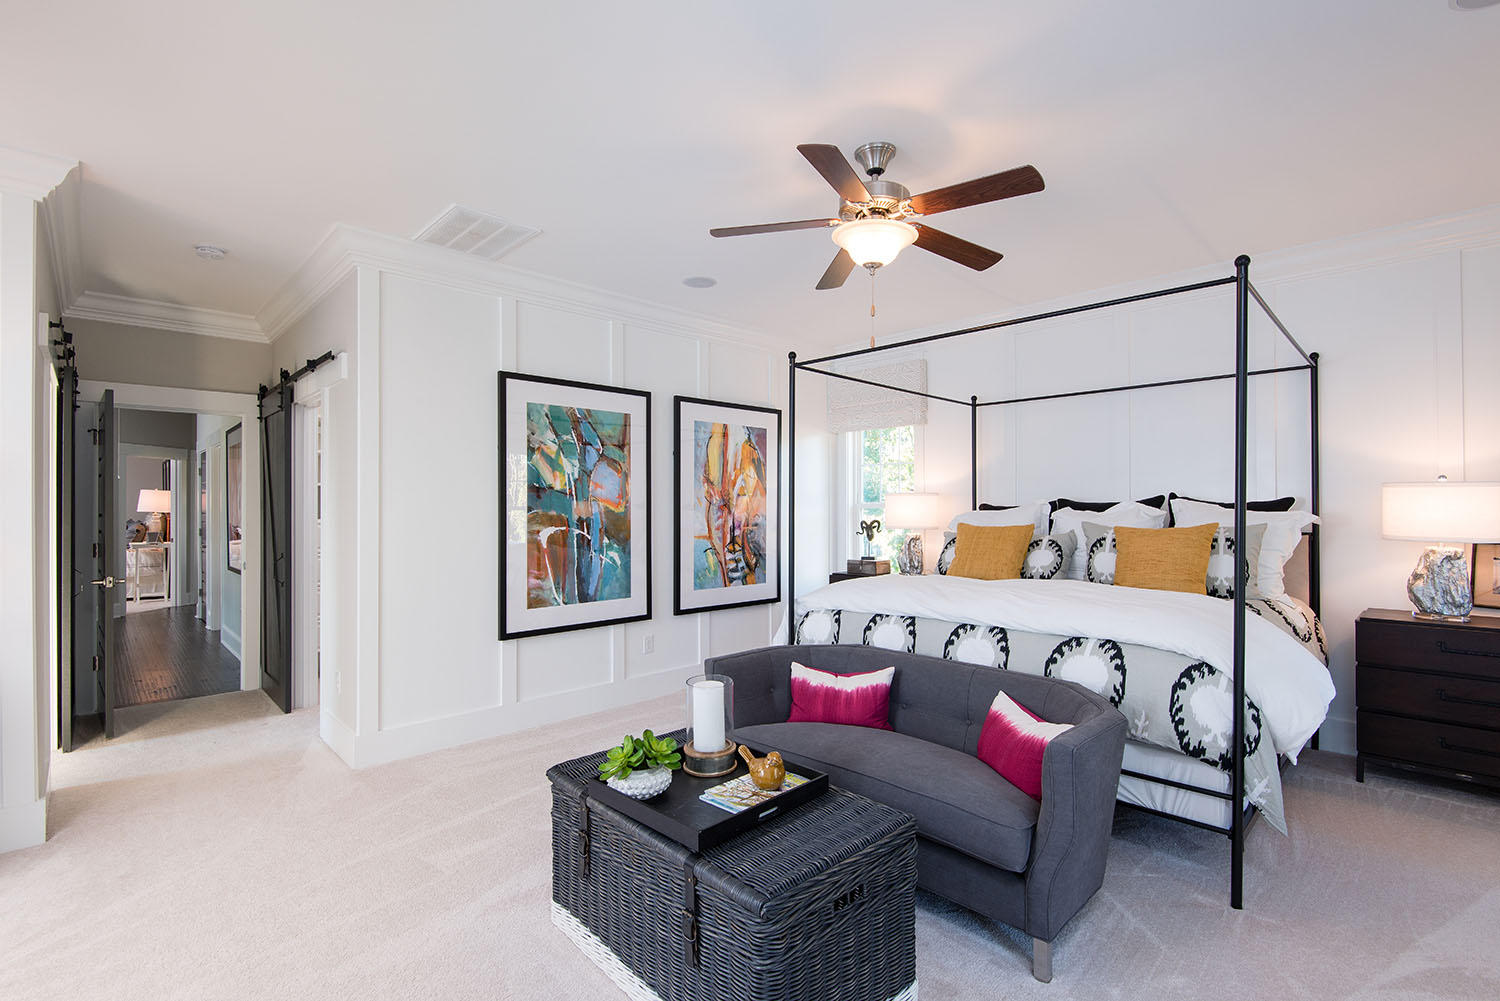 The Village at Stiles Point Homes For Sale - 869 Shutes Folly, Charleston, SC - 13